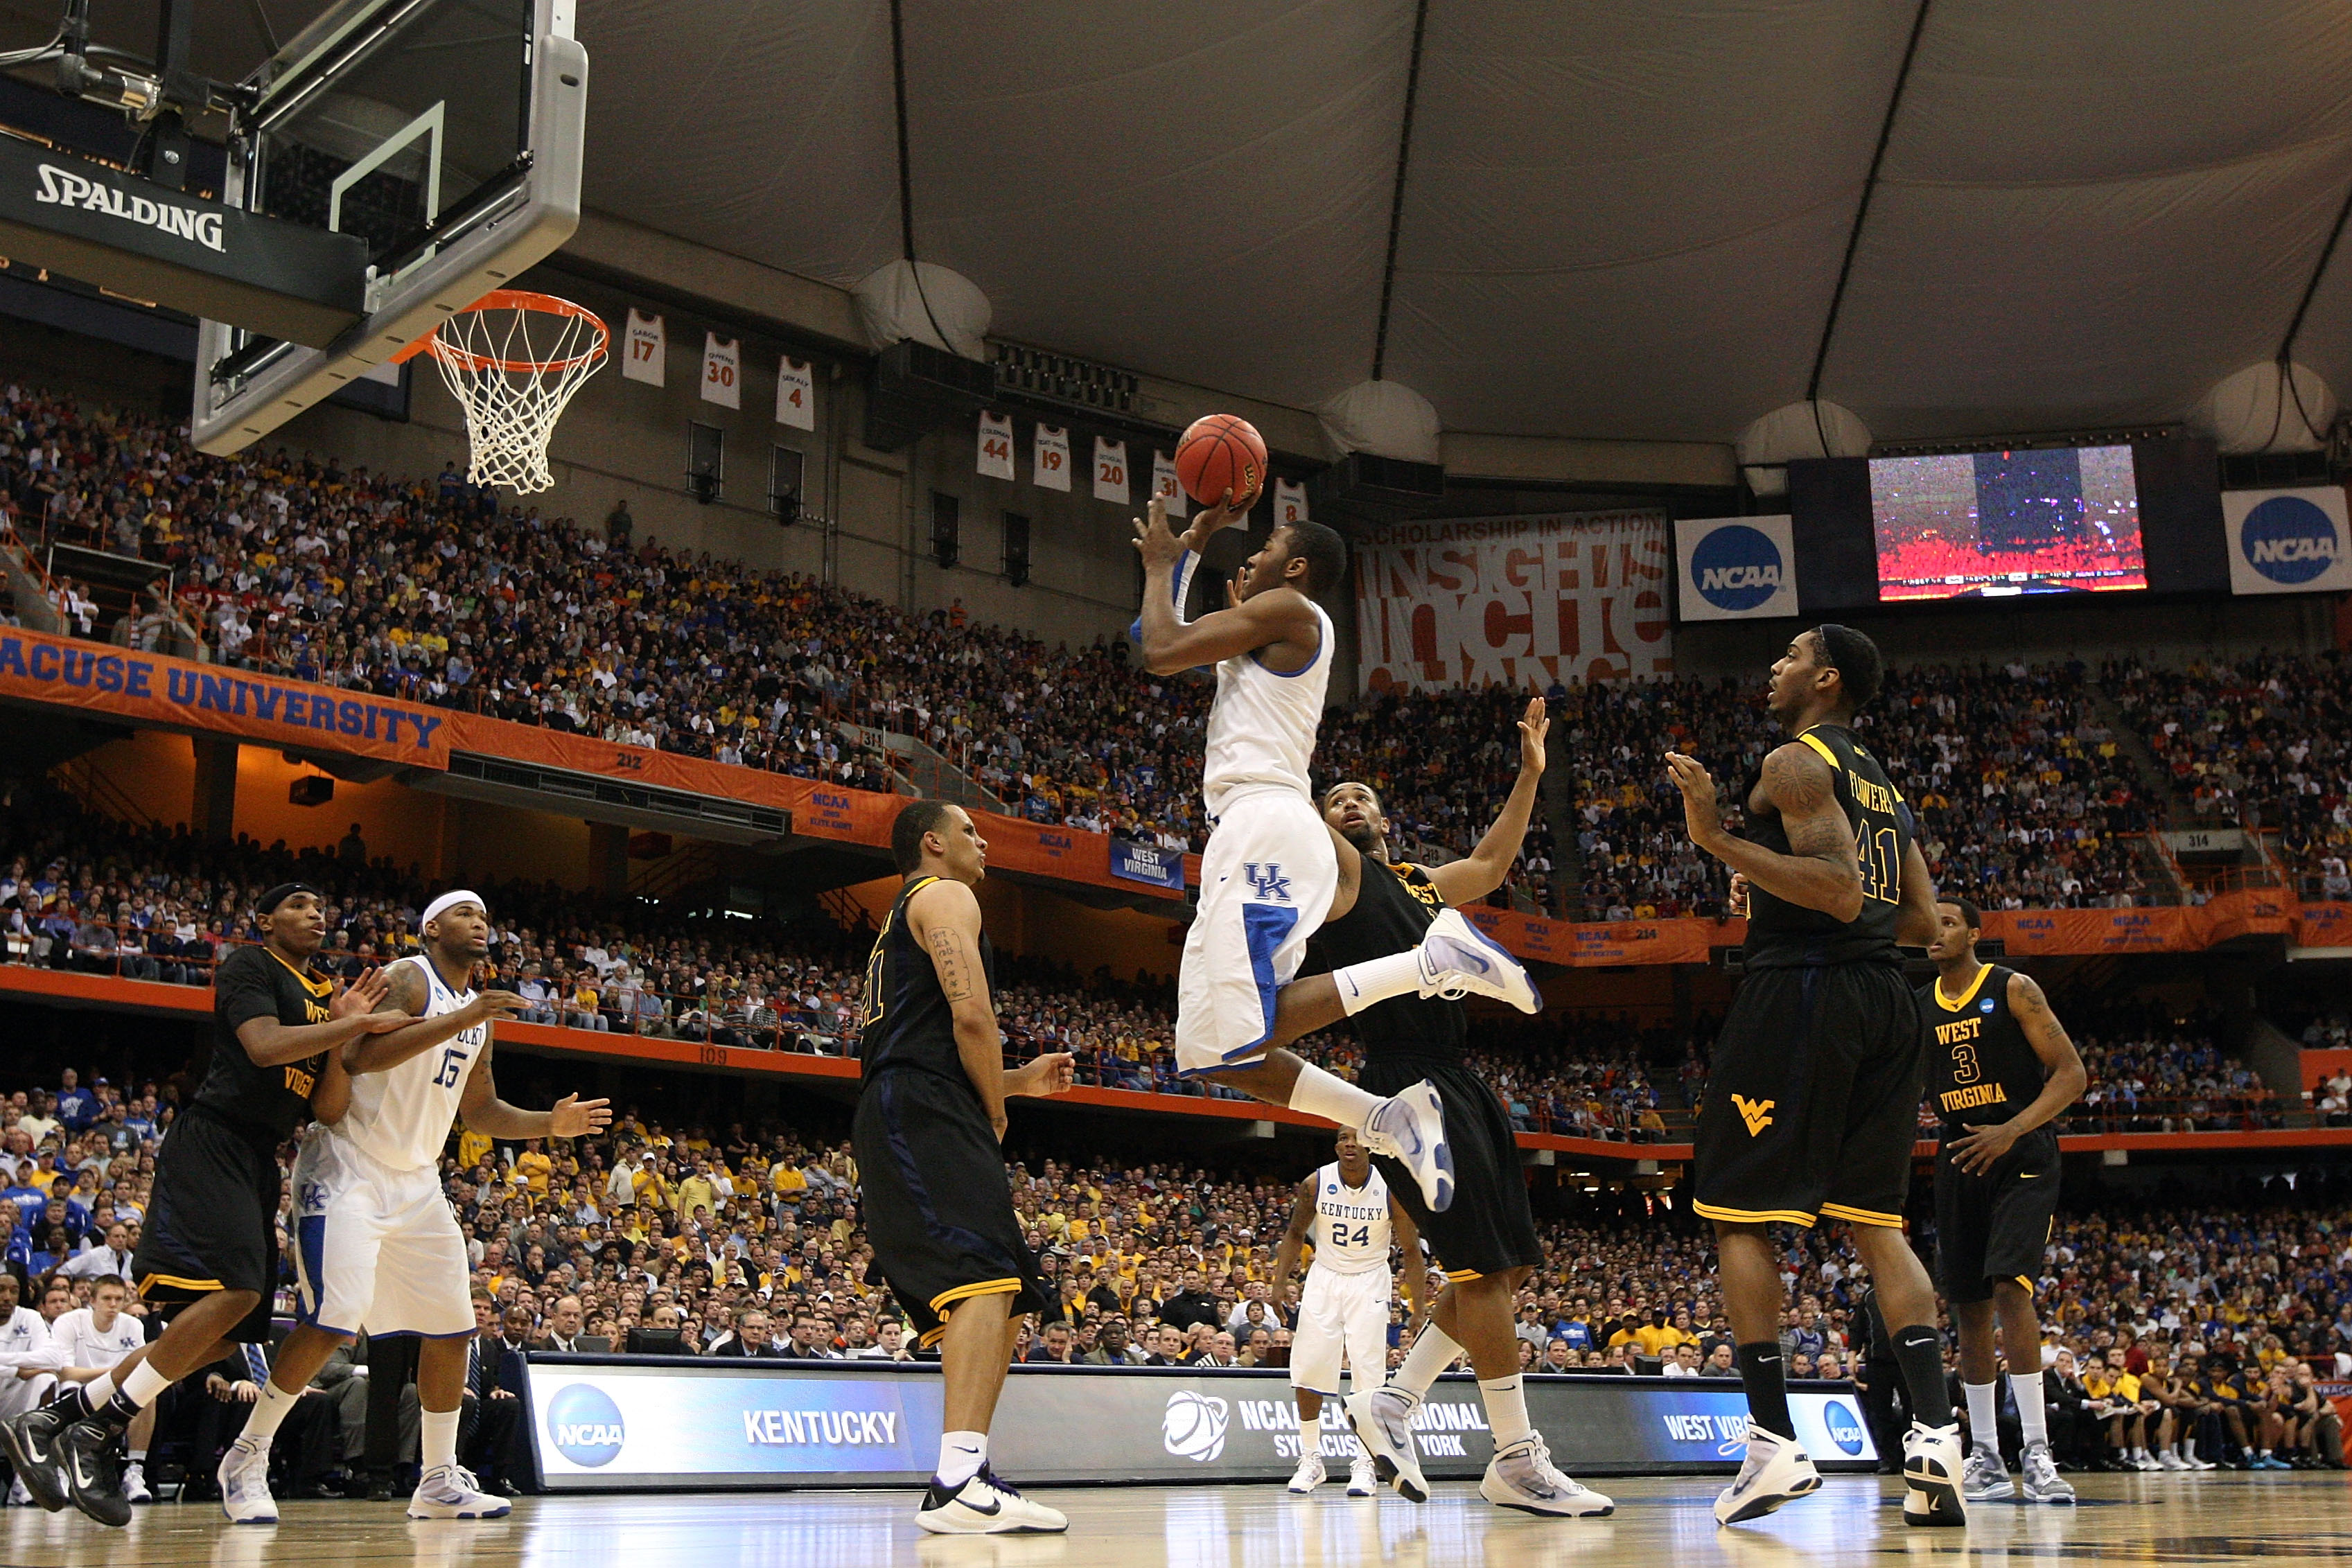 SYRACUSE, NY - MARCH 27:  John Wall #11 of the Kentucky Wildcats drives for a shot attempt against the West Virginia Mountaineers during the east regional final of the 2010 NCAA men's basketball tournament at the Carrier Dome on March 27, 2010 in Syracuse